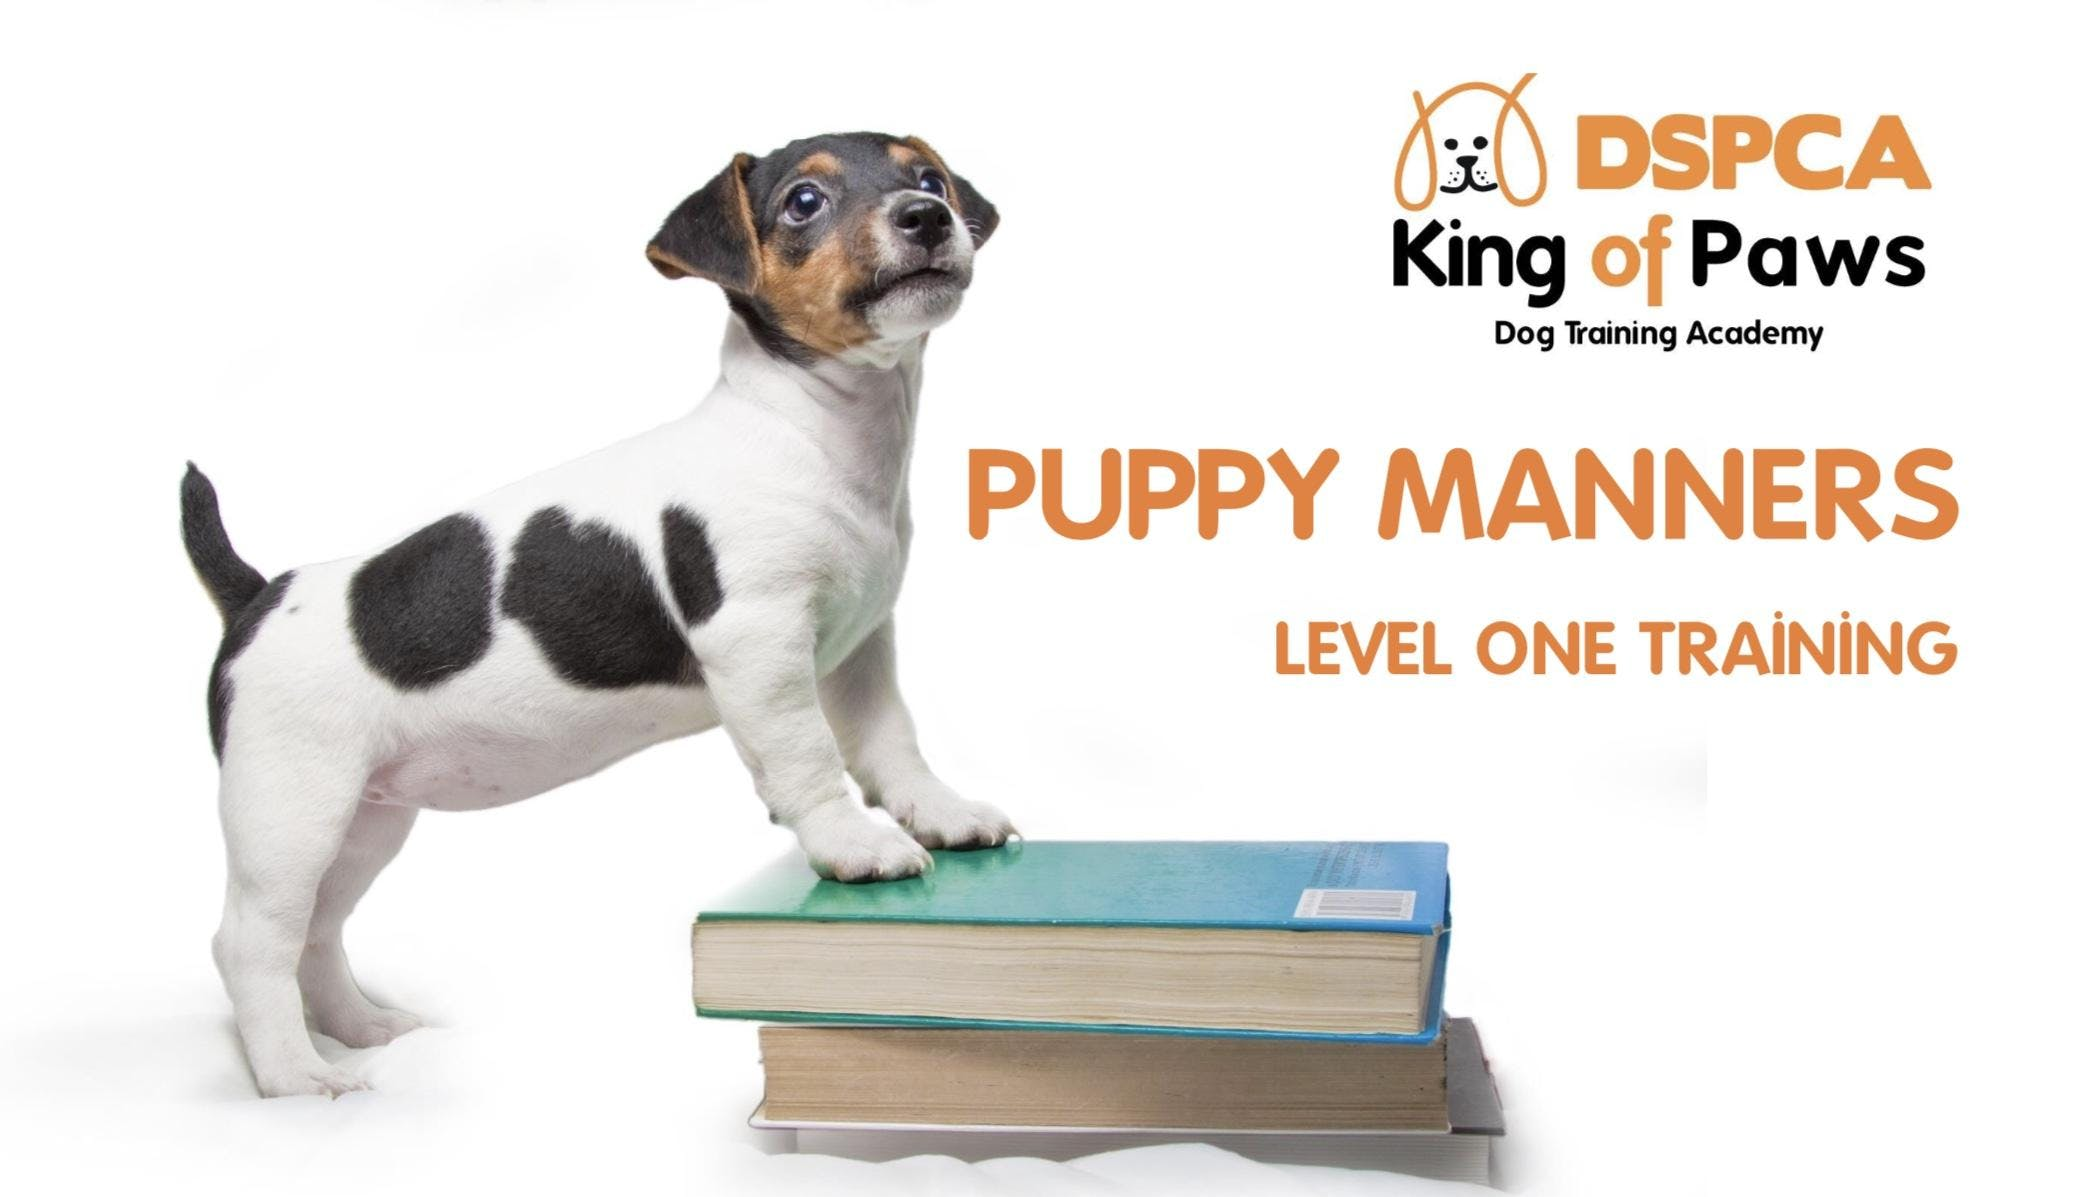 PUPPY MANNERS (LEVEL 1) Sunday, DSPCA